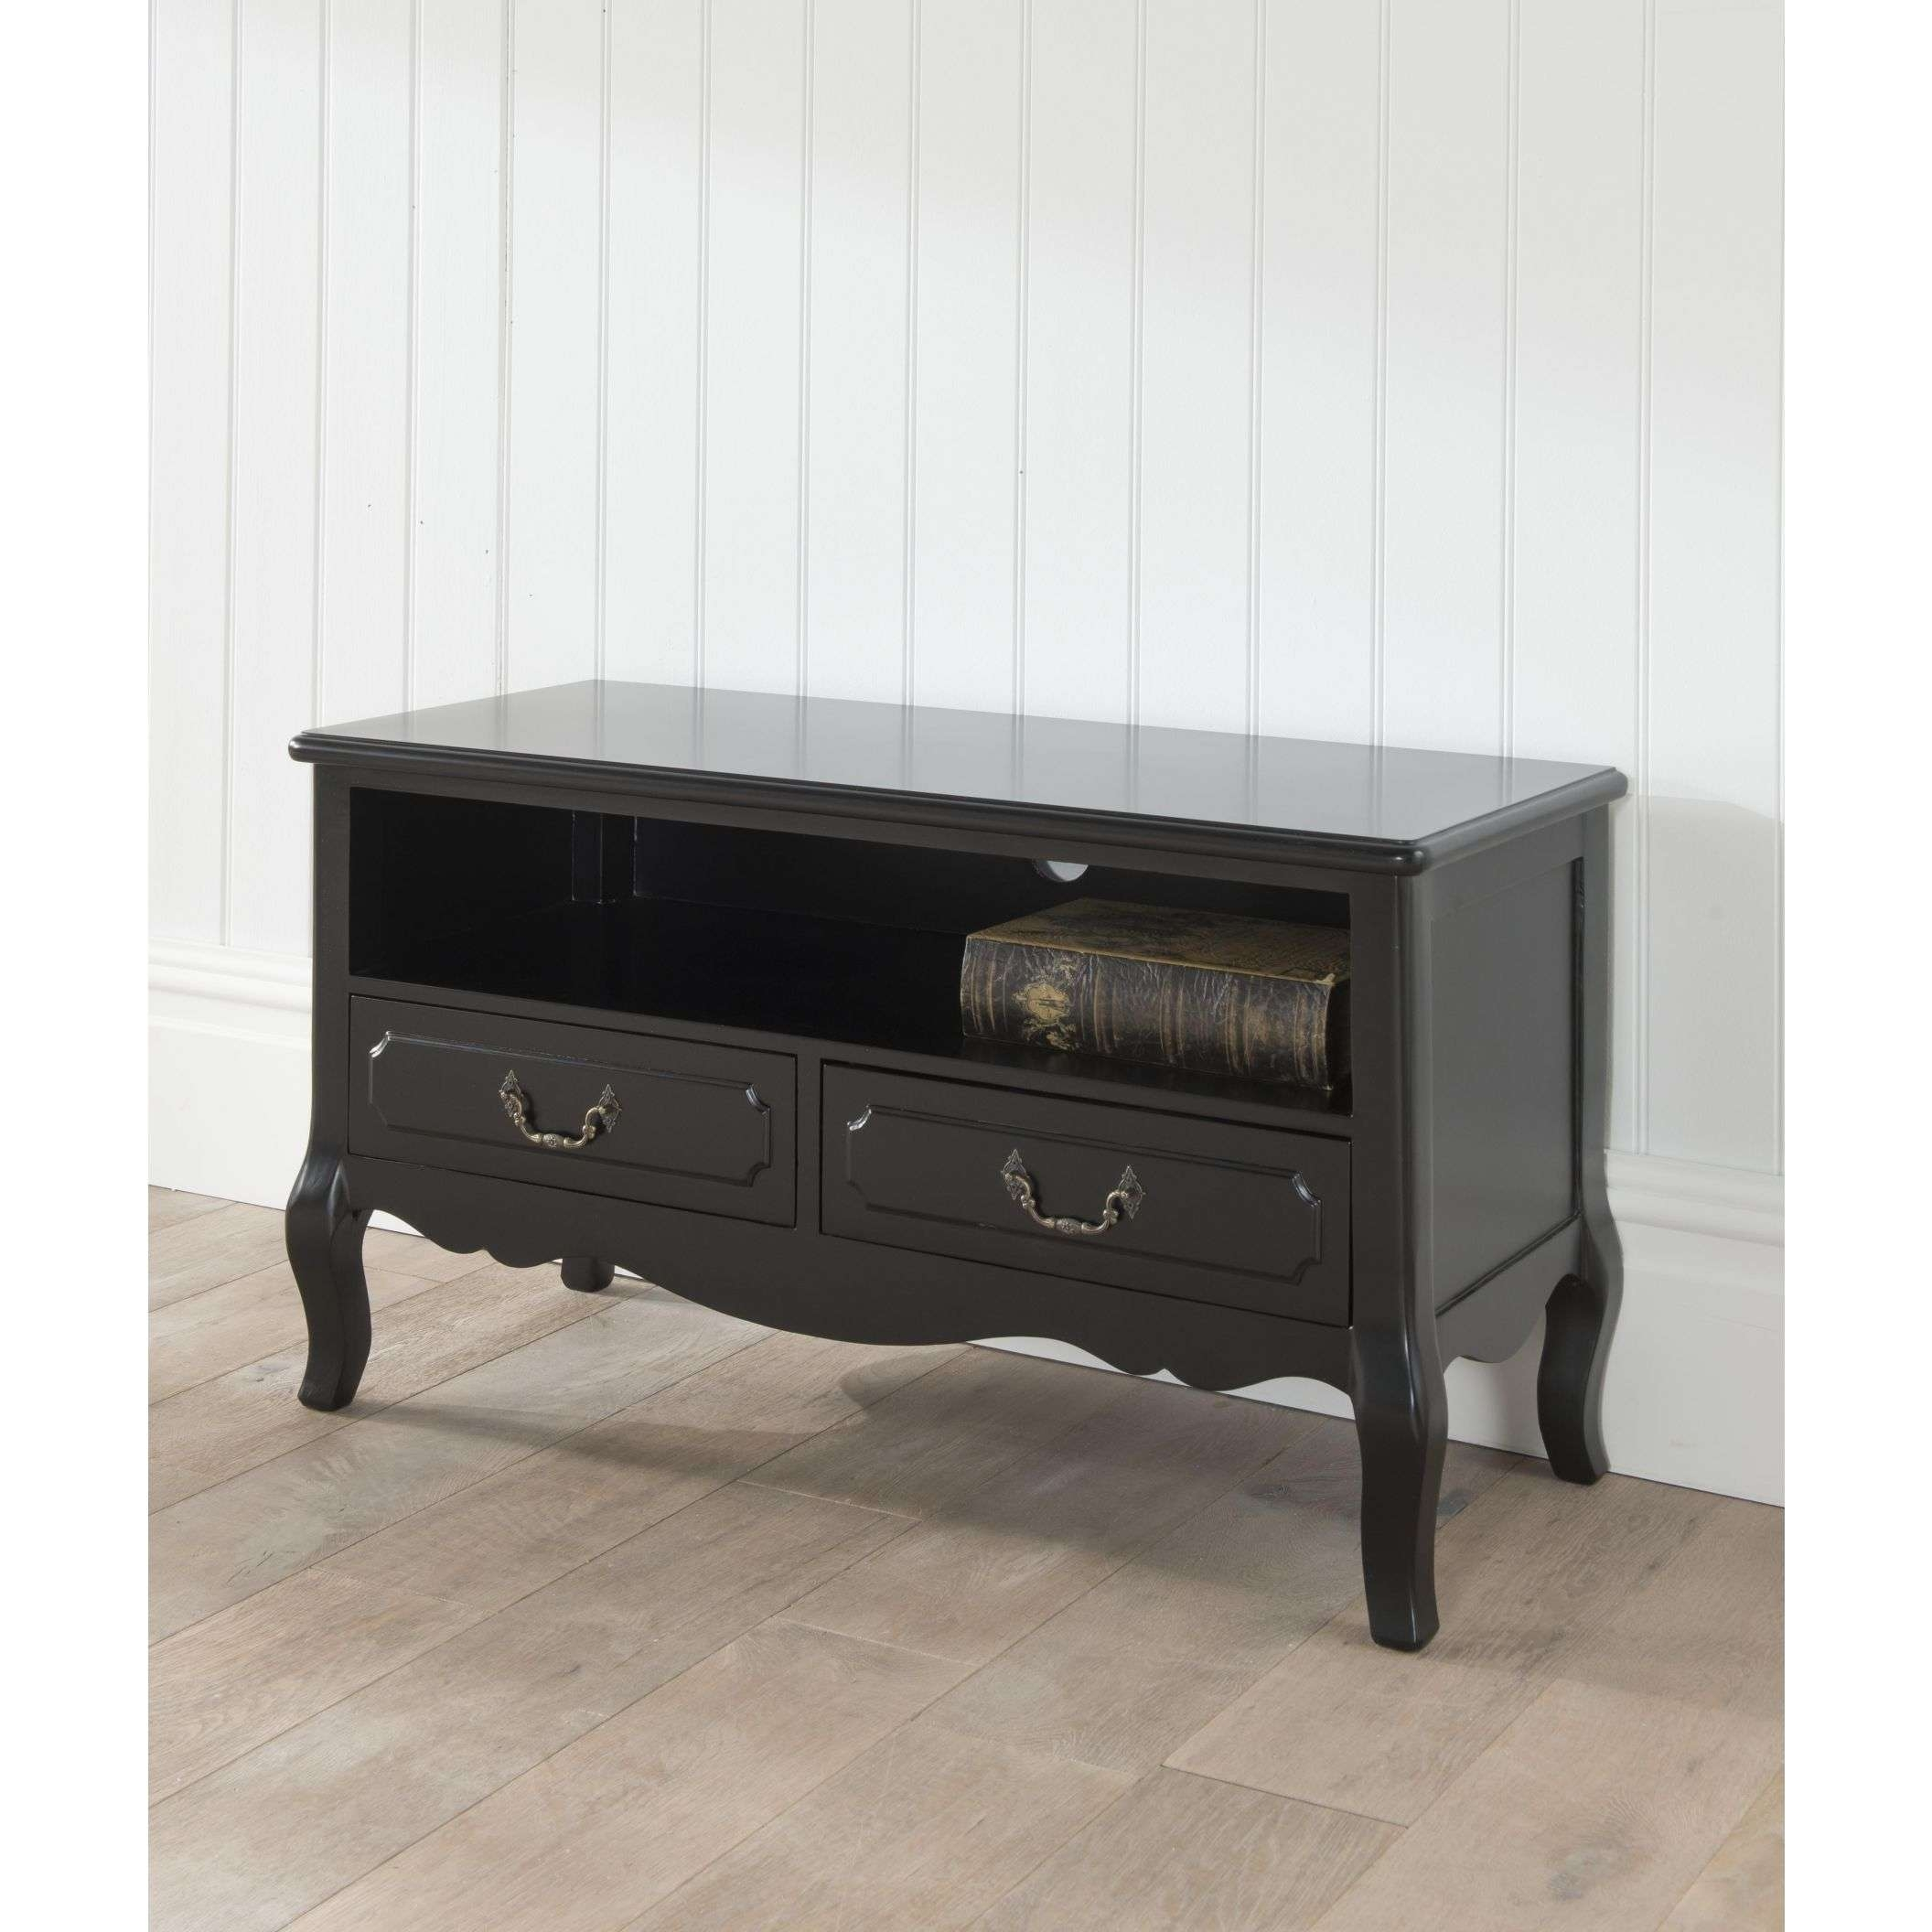 Antique French Tv Stand | Black French Style Furniture Regarding Vintage Style Tv Cabinets (View 9 of 20)